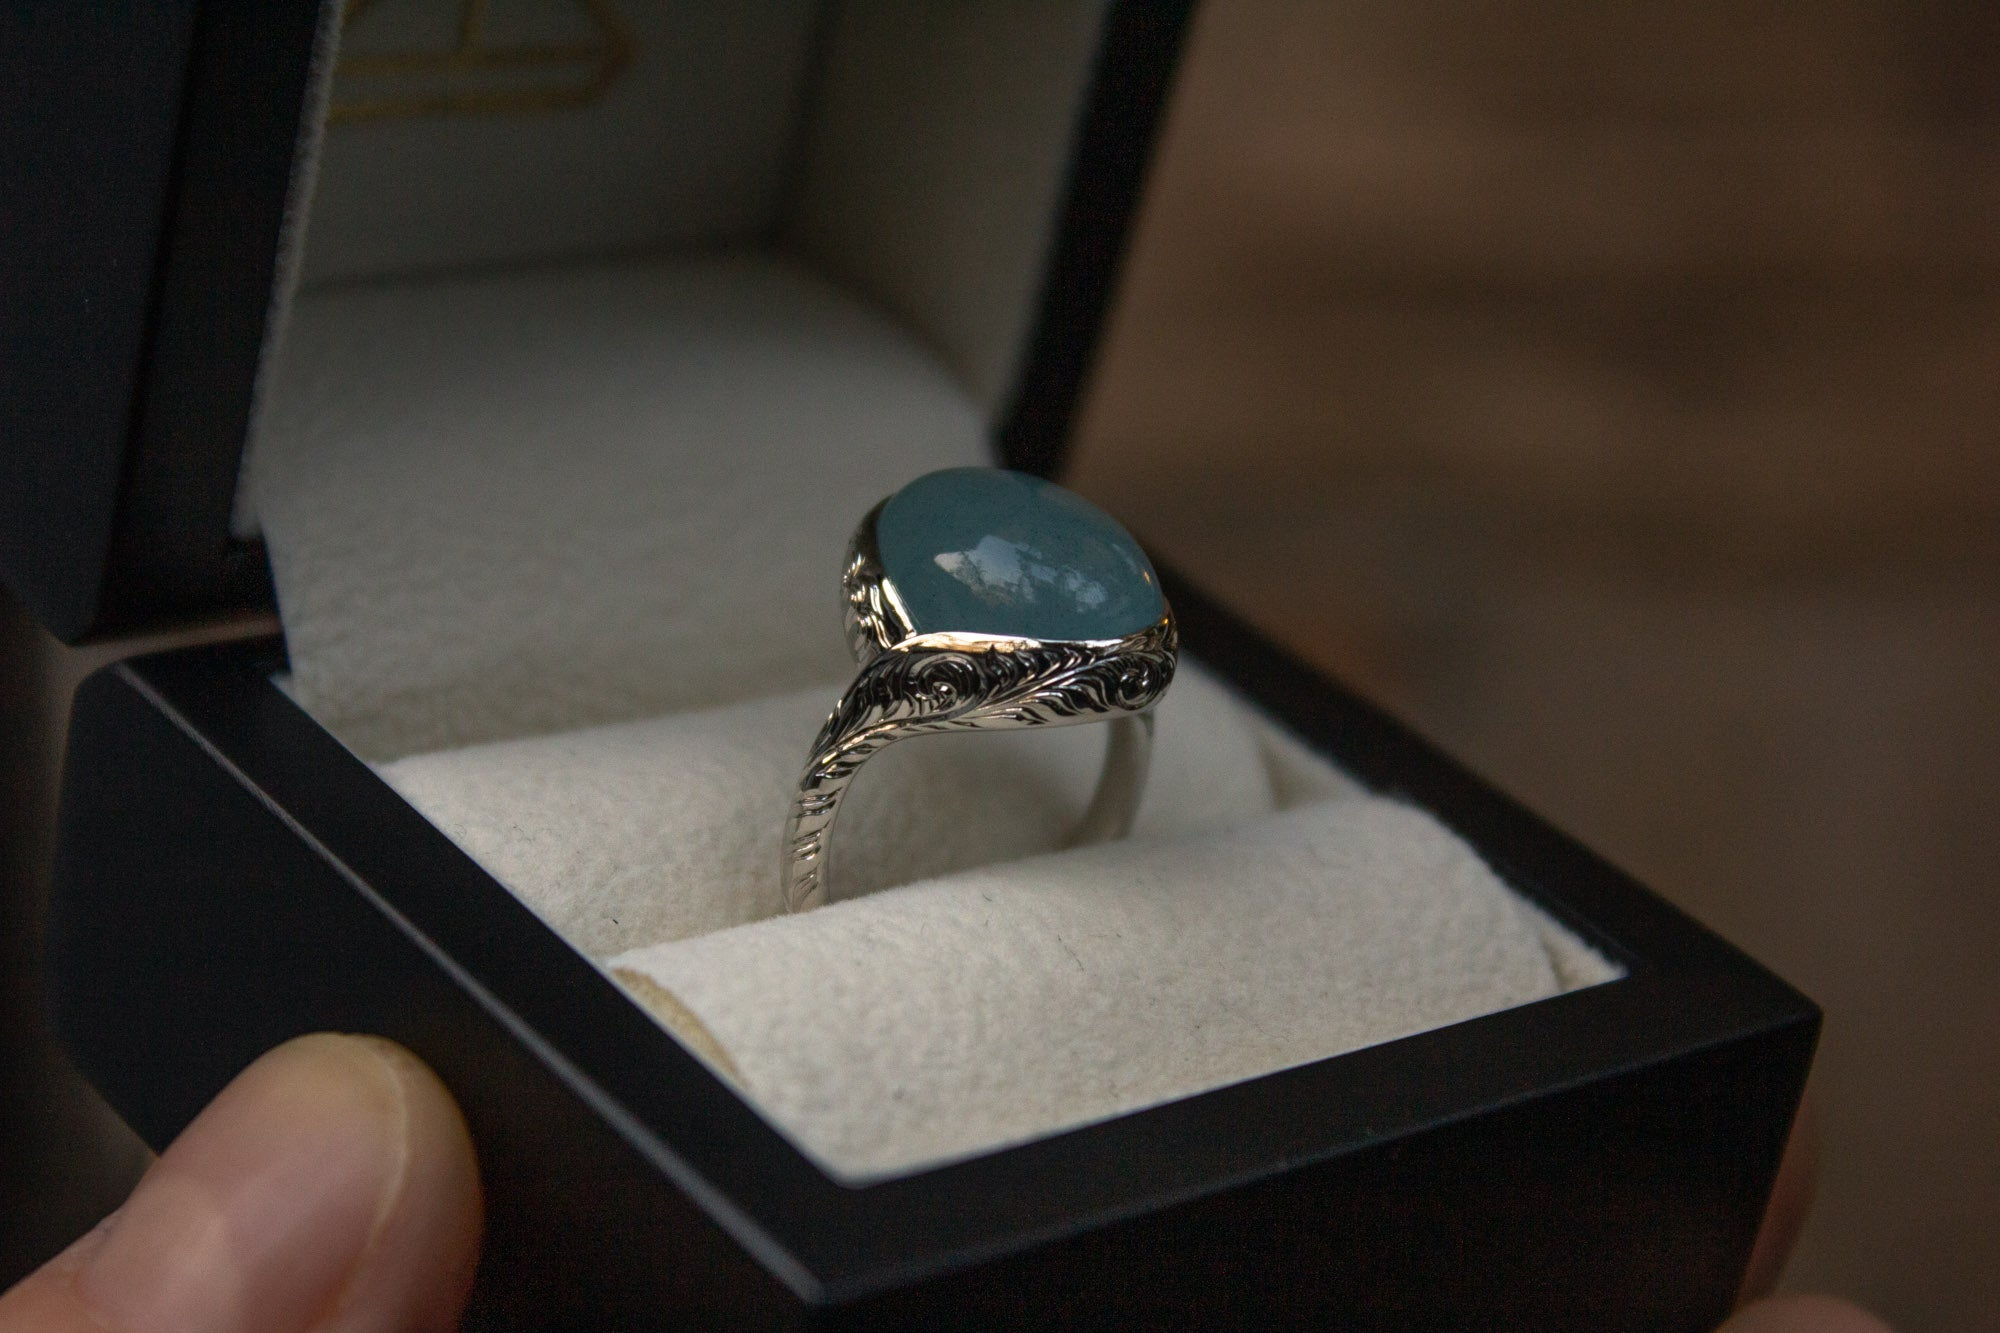 Bespoke cabochon aquamarine engraved platinum ring